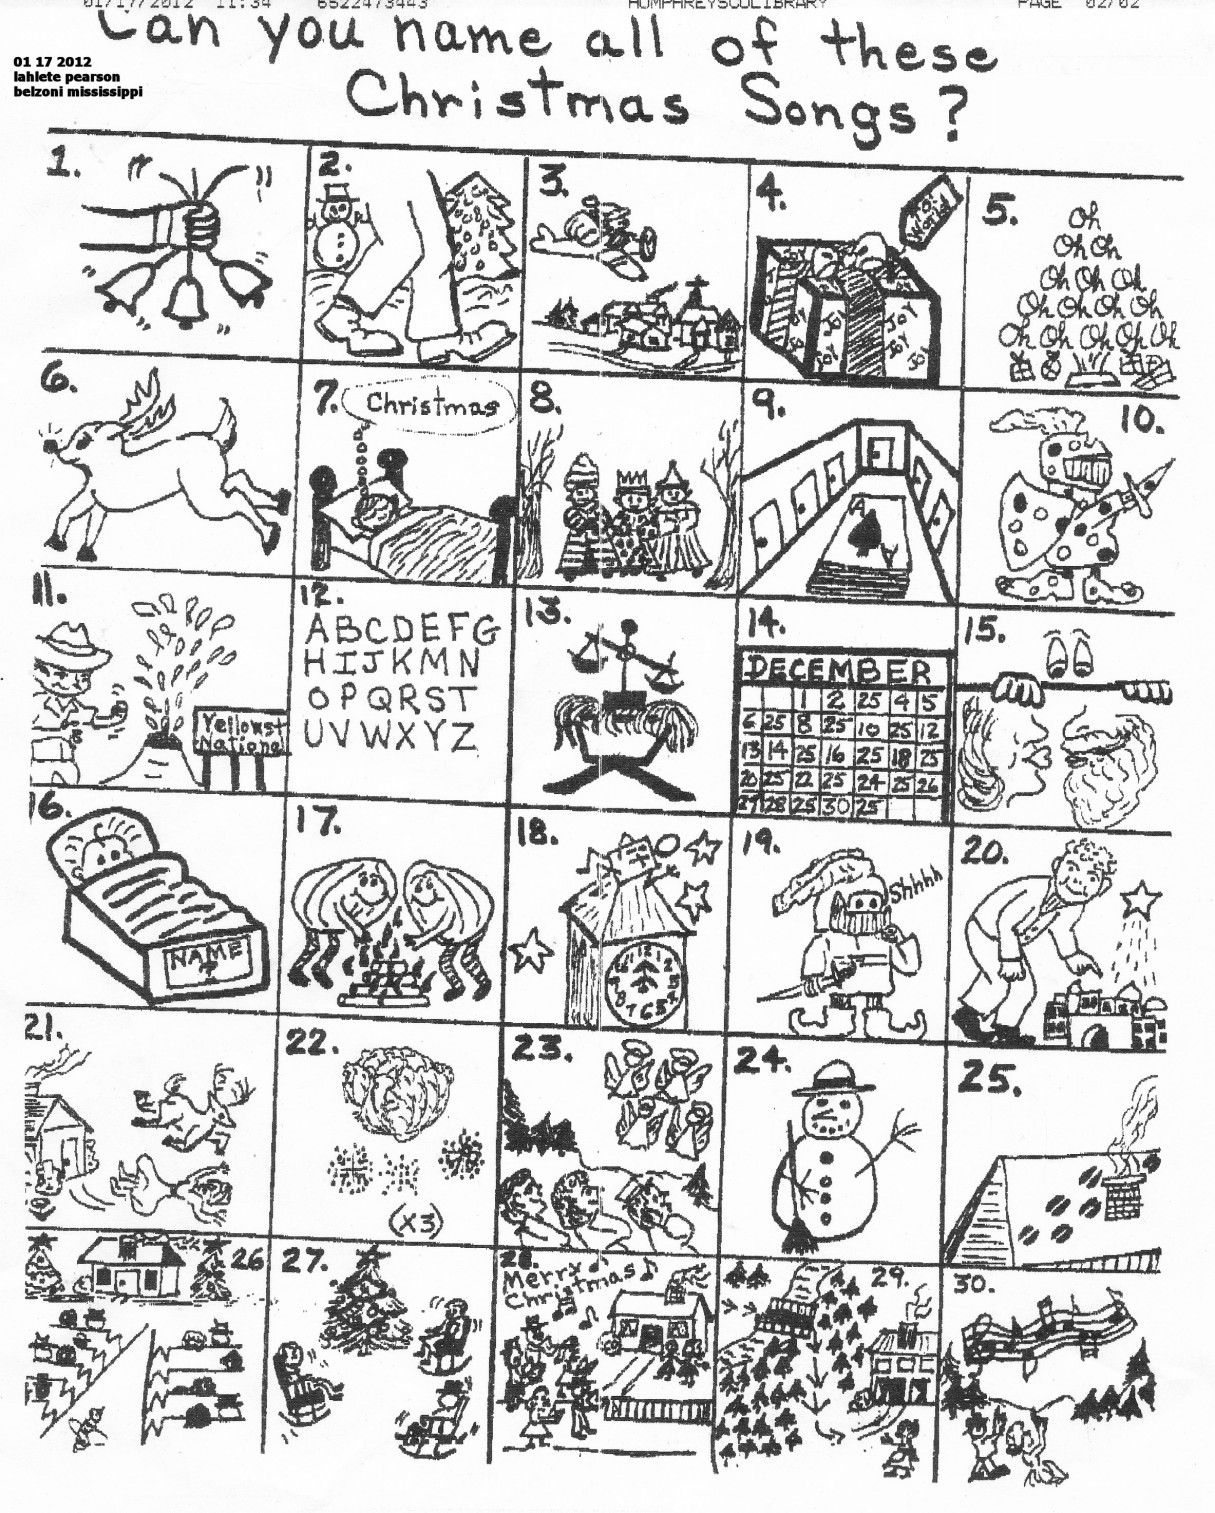 worksheet Christmas Carol Guess Worksheet the original puzzle holidayparty ideas pinterest church puzzle